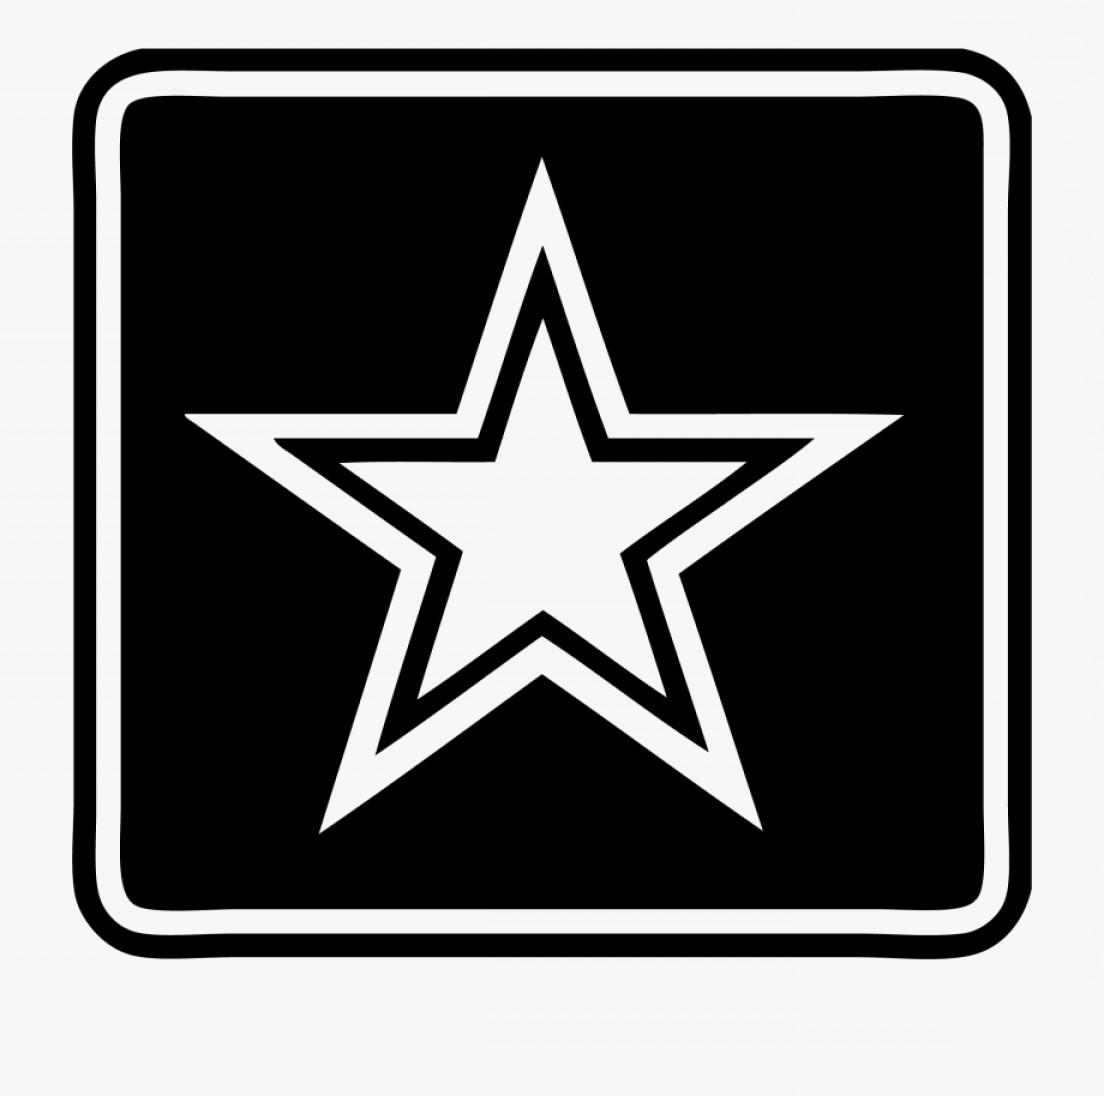 Hiihhbmilitary Star Clipart Transparent Background Us Army.